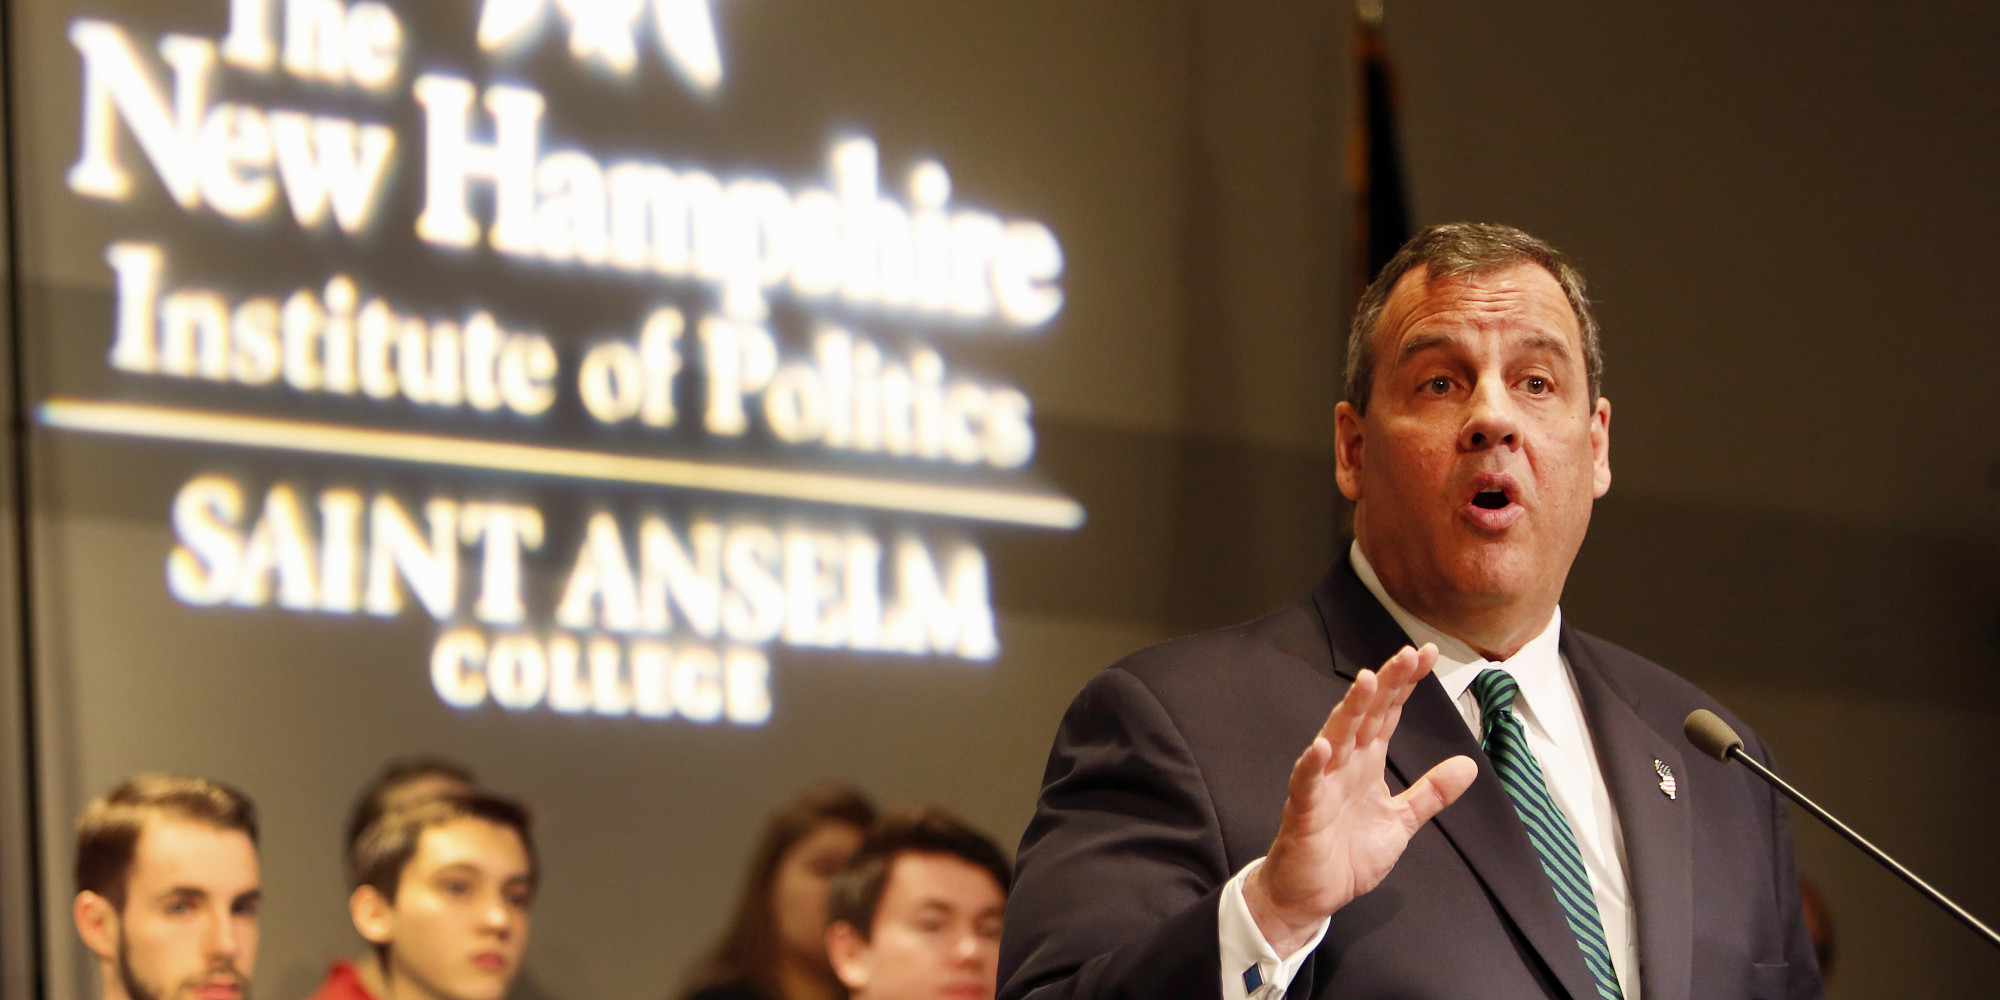 christies re election speech a paper Chris christie, whose presidential hopes have been running into increasing turbulence, sold himself to influential republicans as a straight-talking problem solver during weekend appearances in.